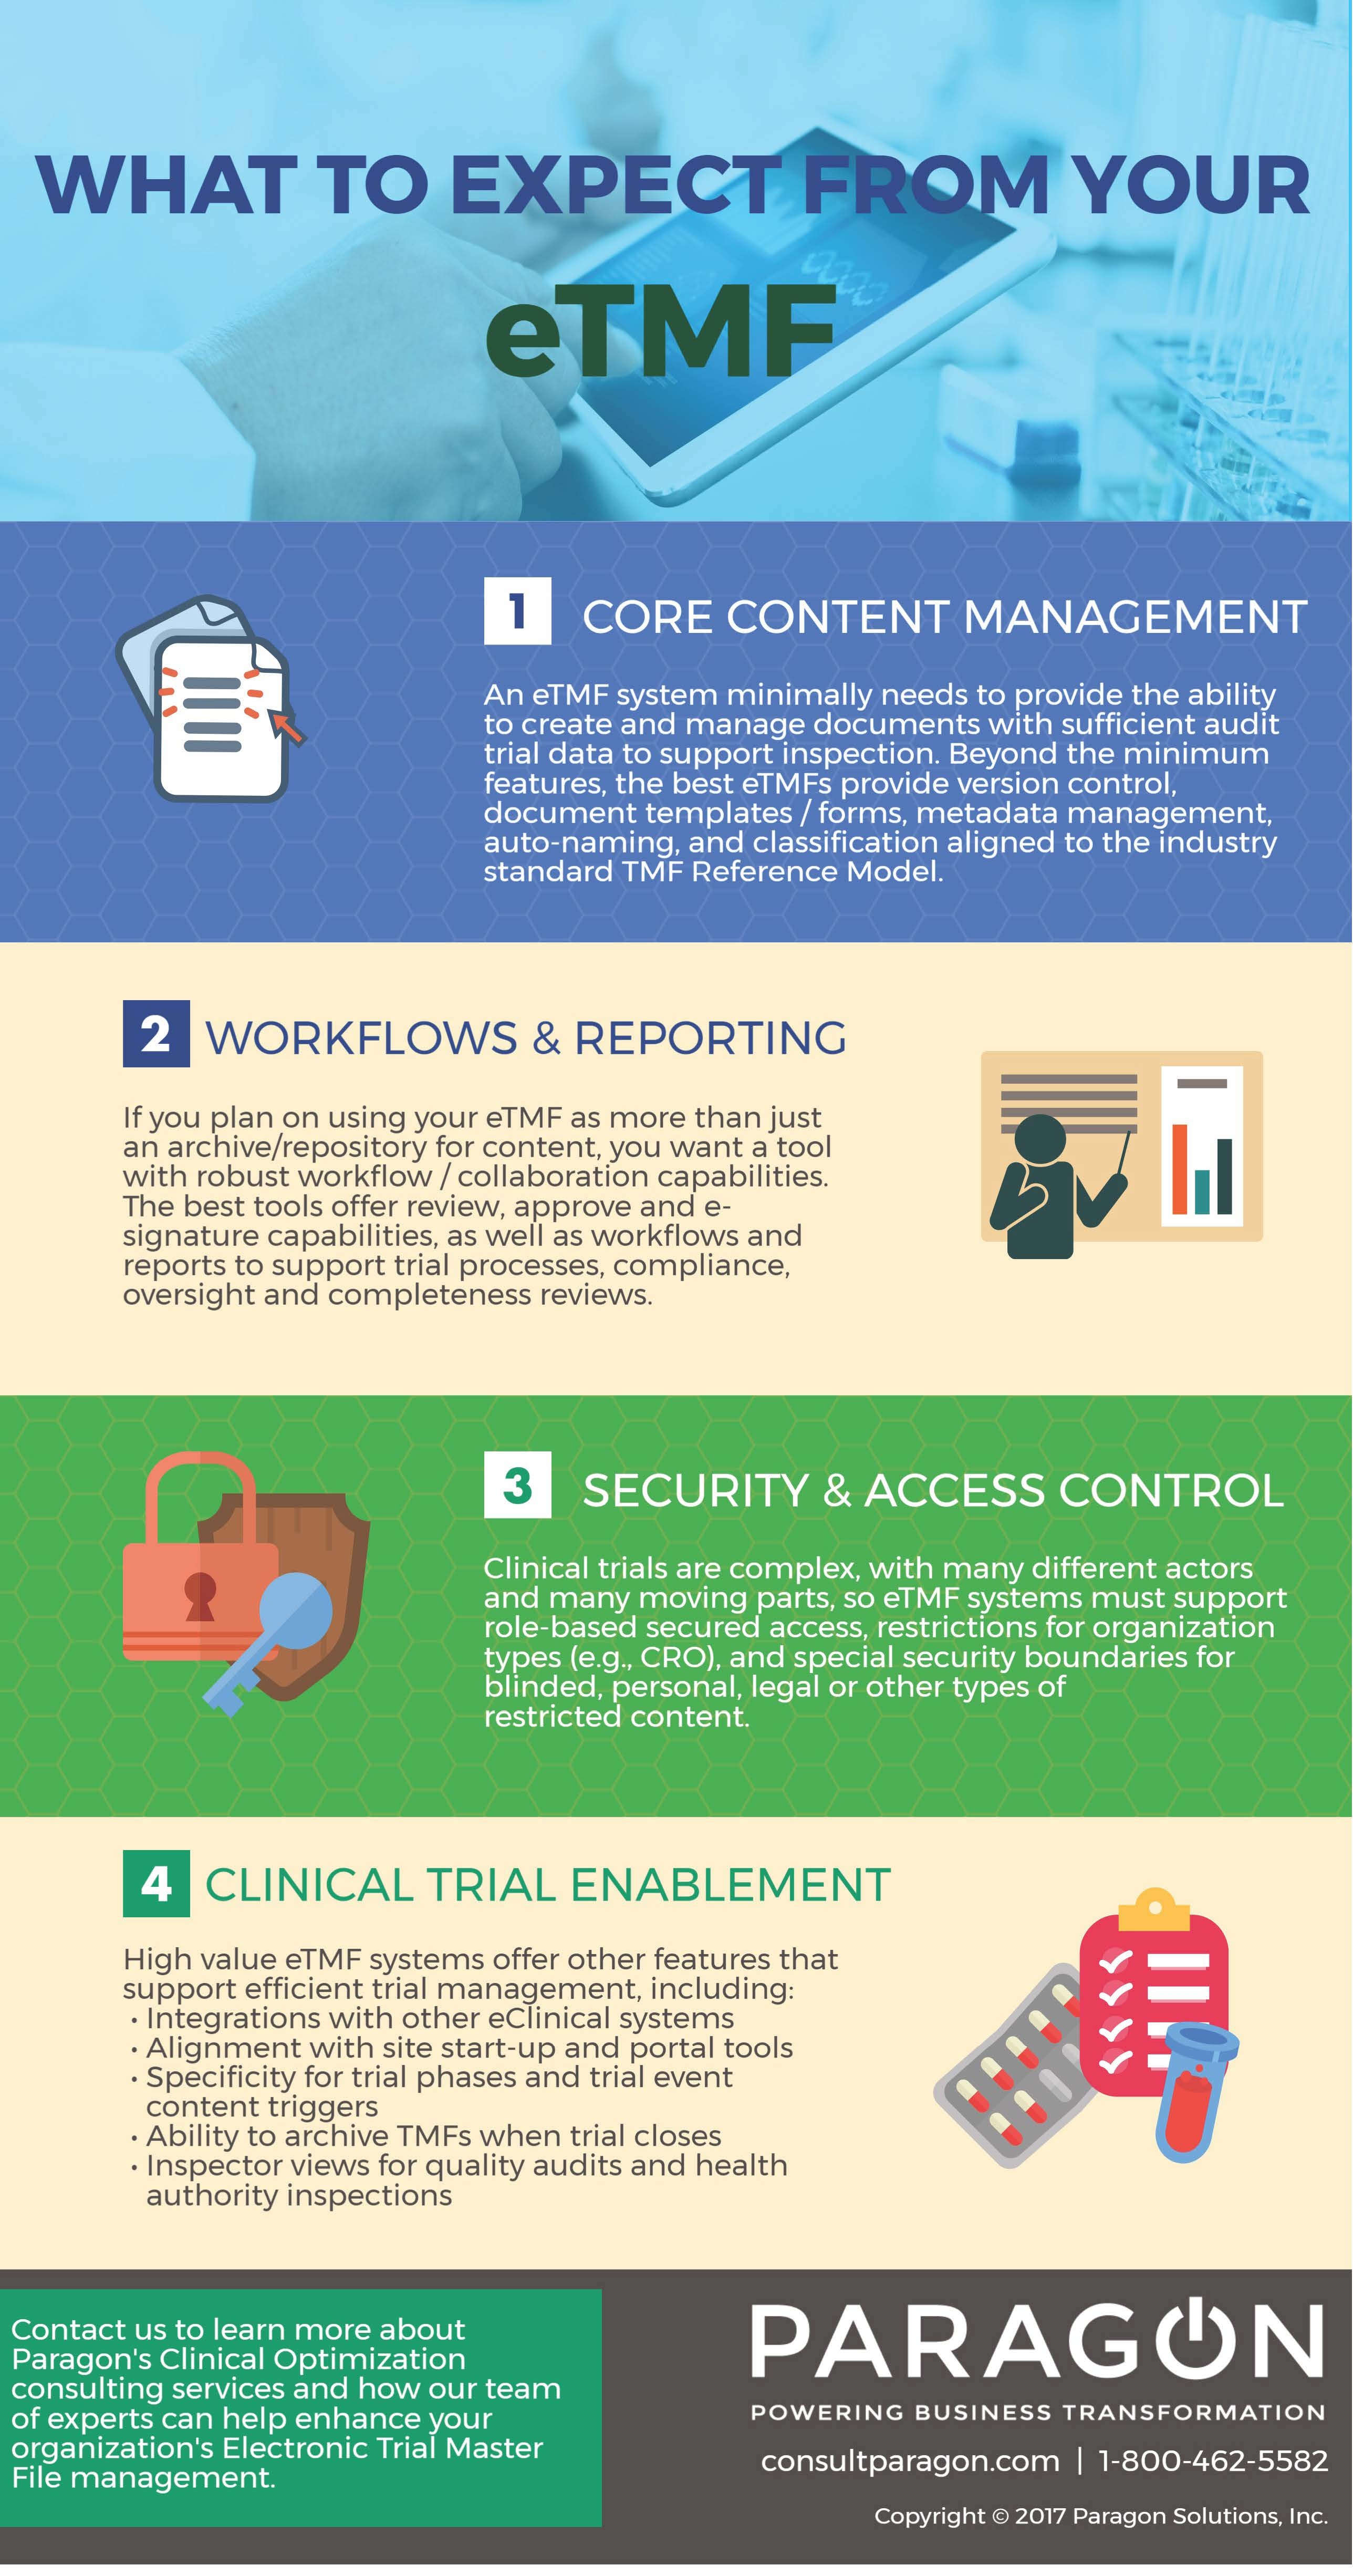 RD_CLIN_Infographic_What to Expect From Your eTMF 170731 (1).jpg